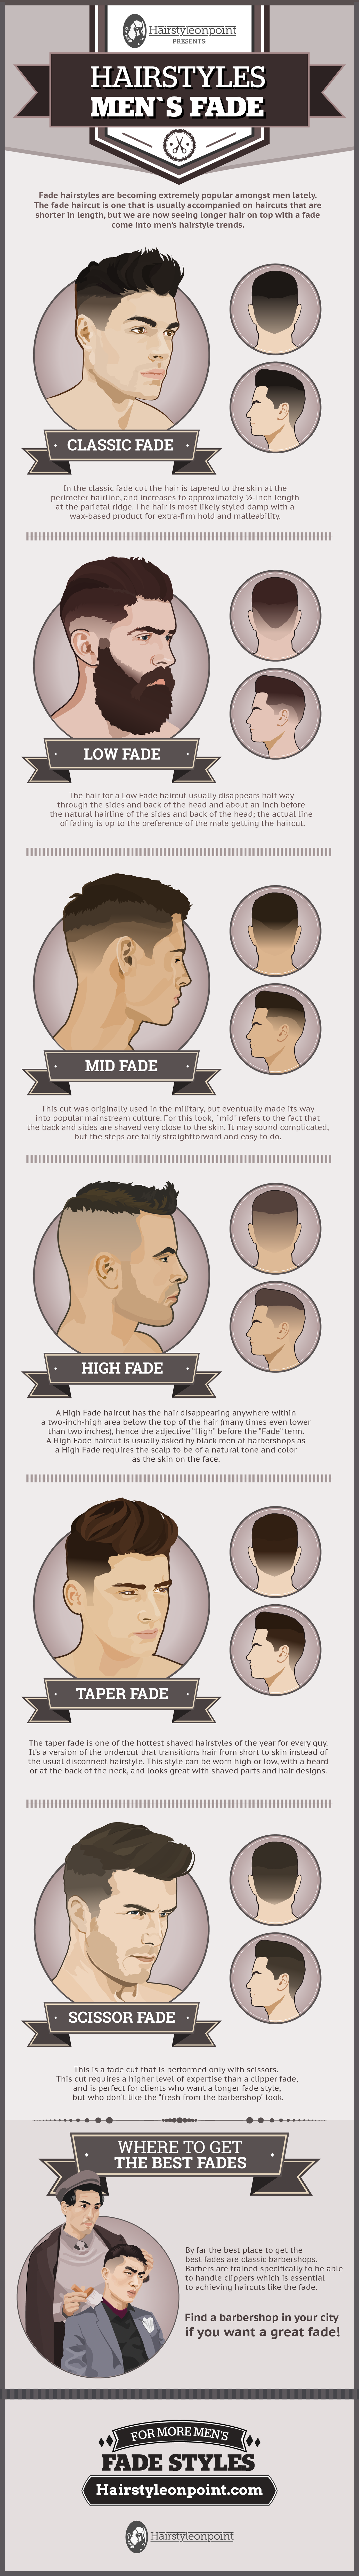 Menus hairstyles a simple guide to popular and modern fades hair